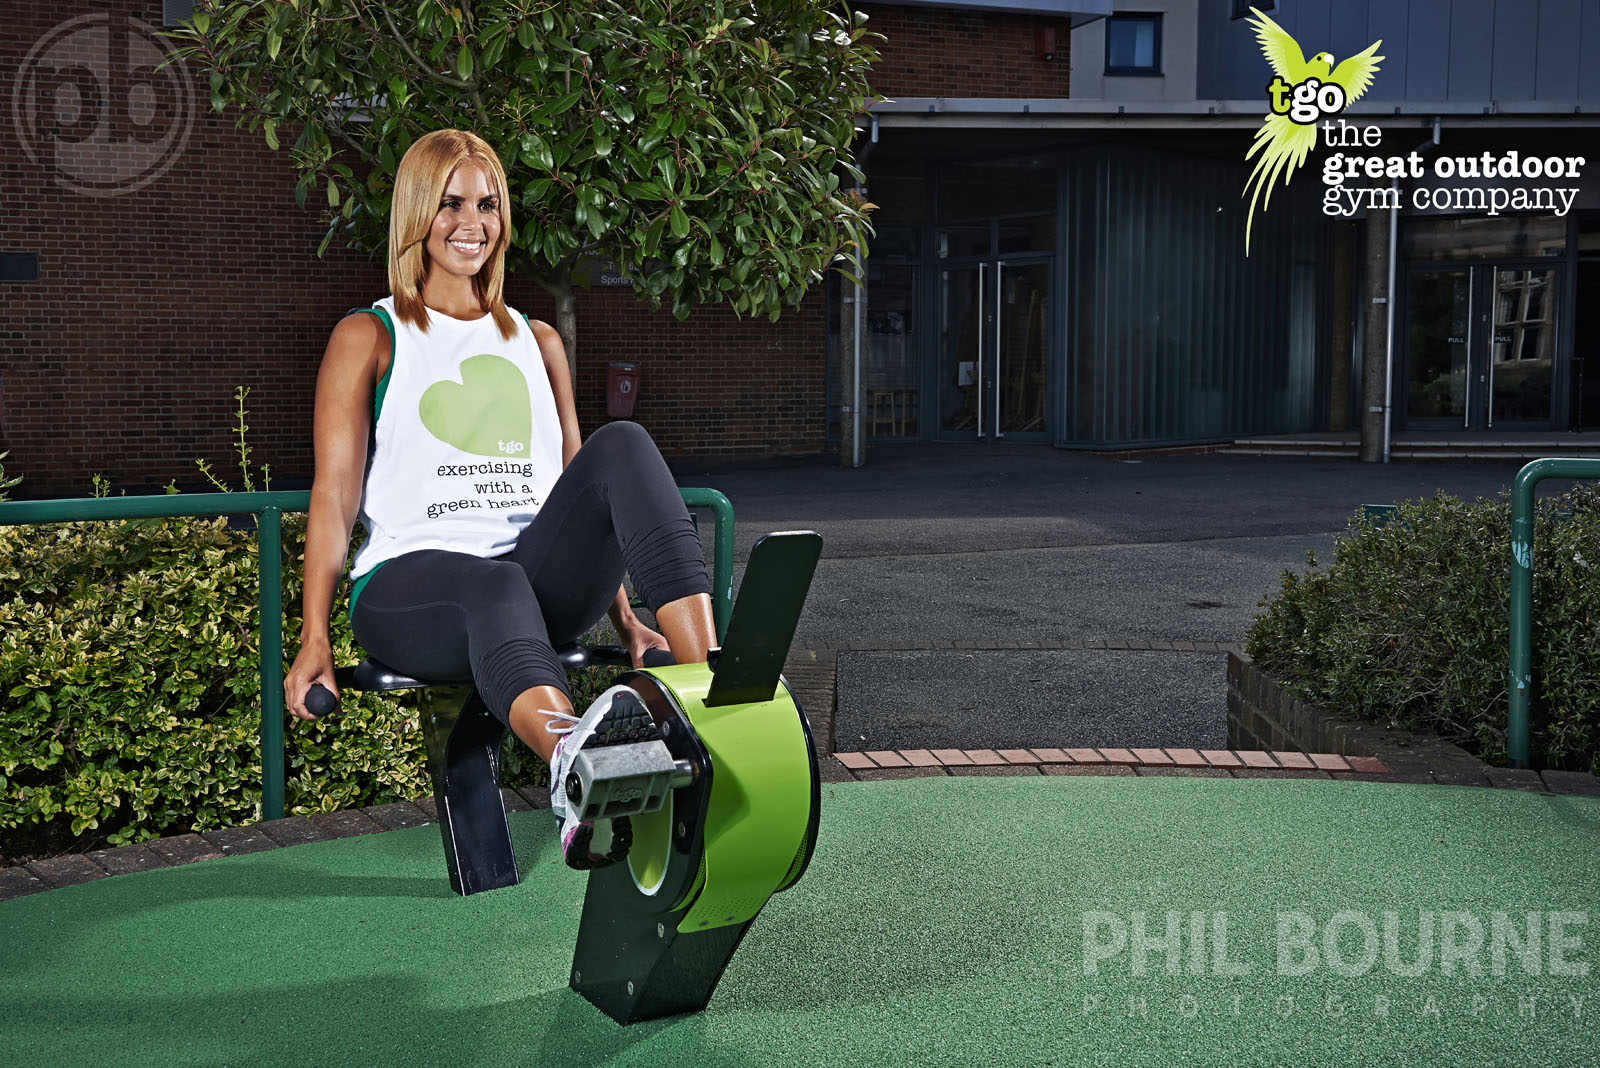 The Great Outdoor Gym Company campaign shoot